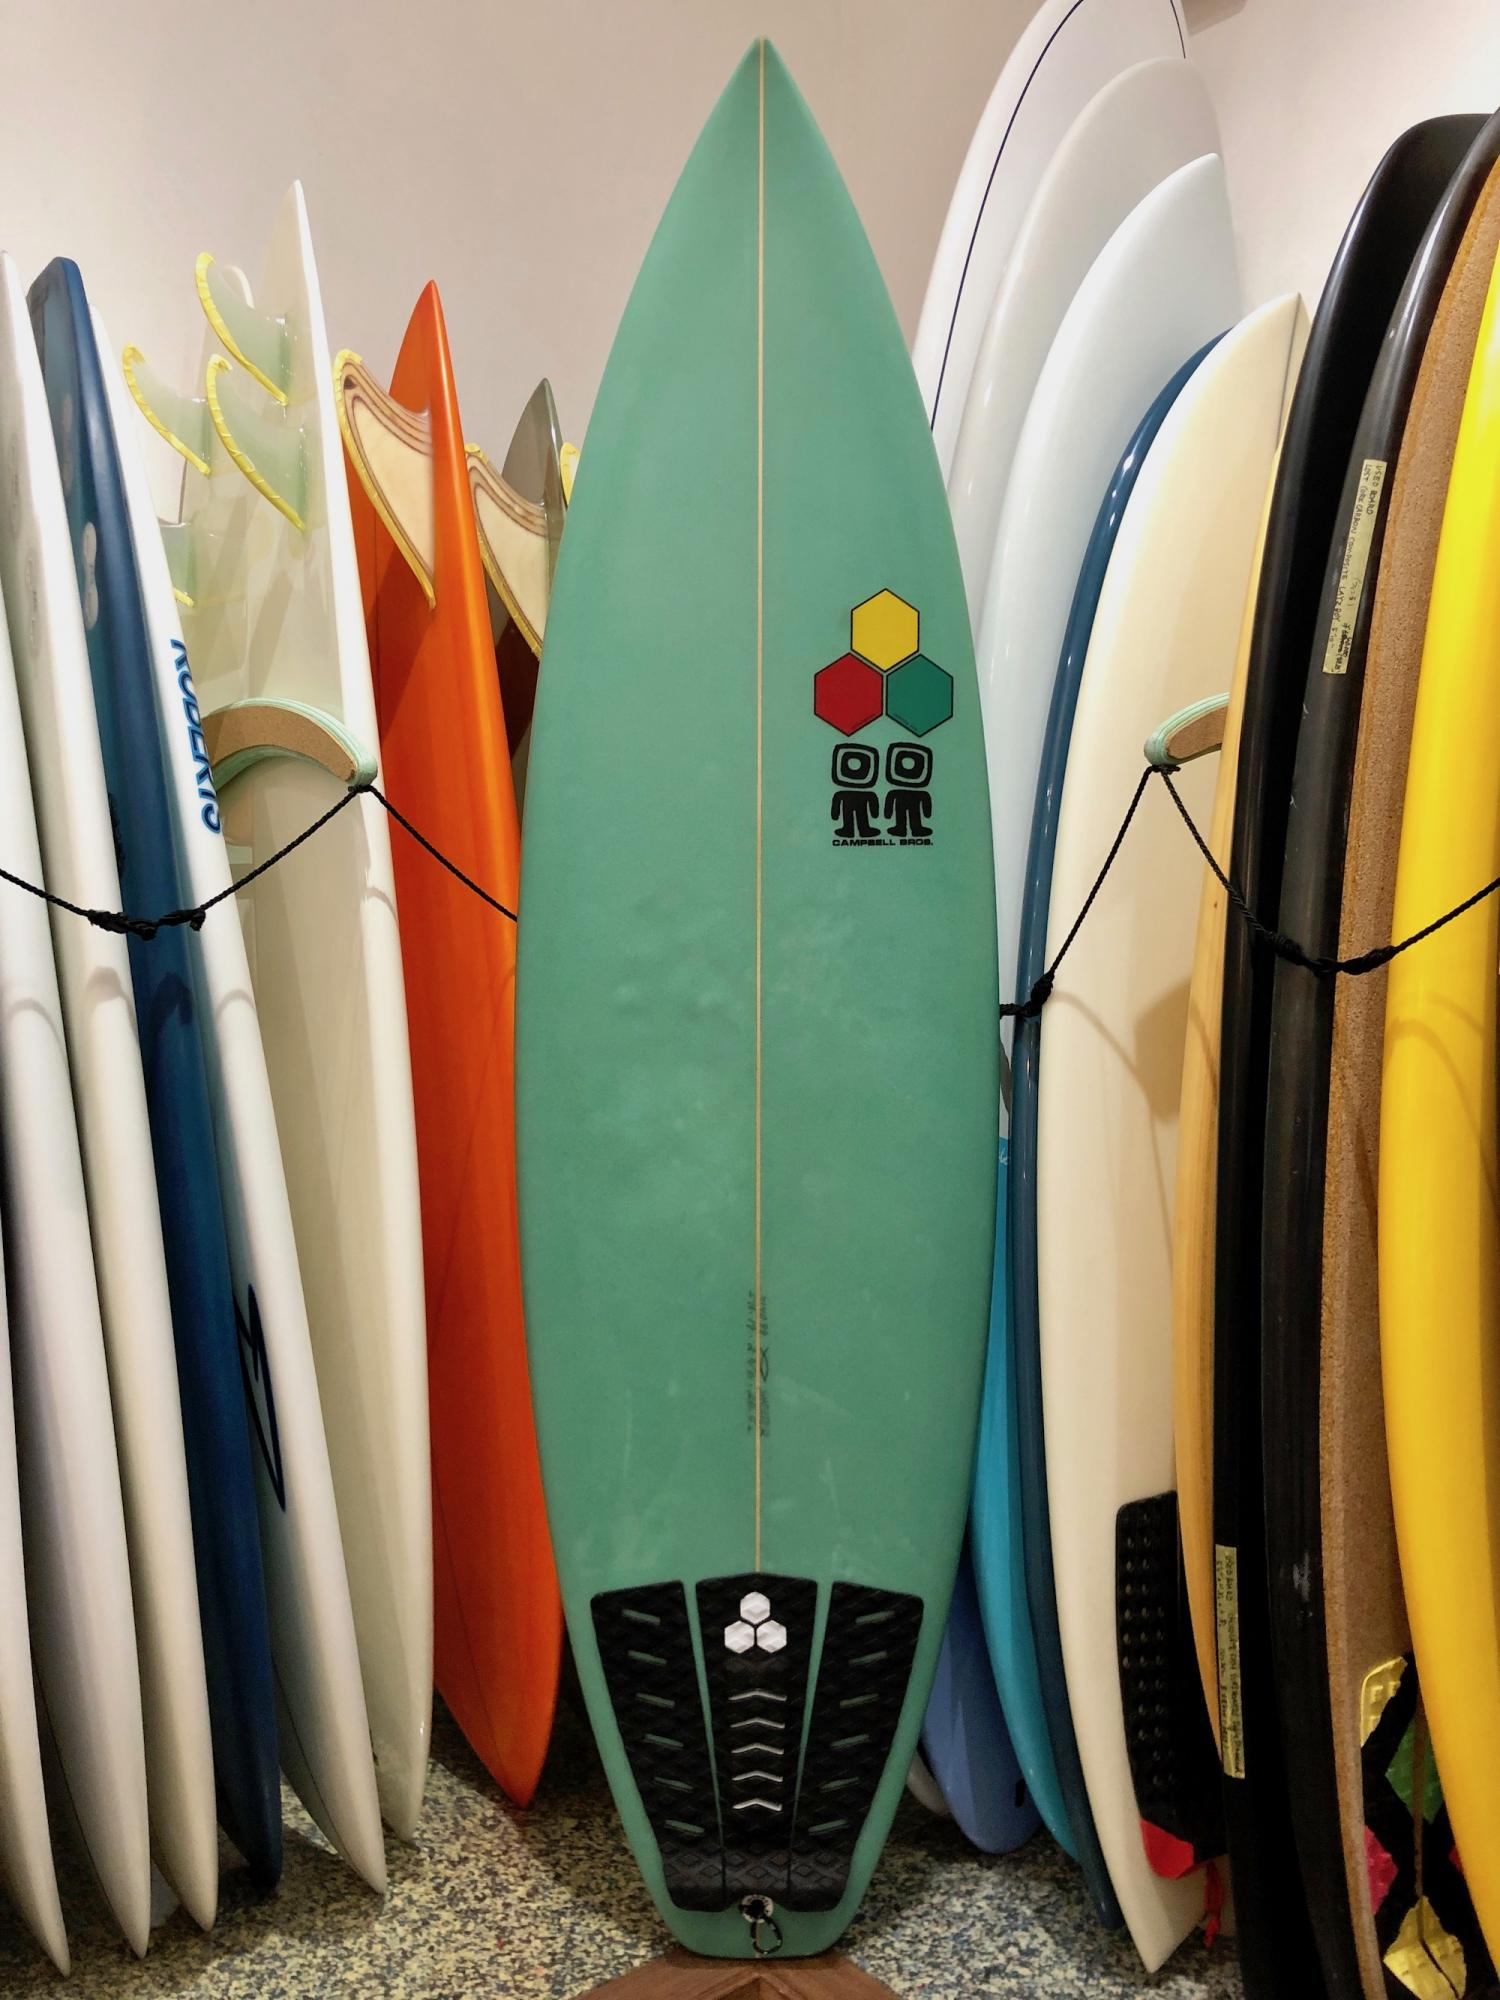 USED BOARDS (Channel Islands The Bonzer Shelter 5.11)